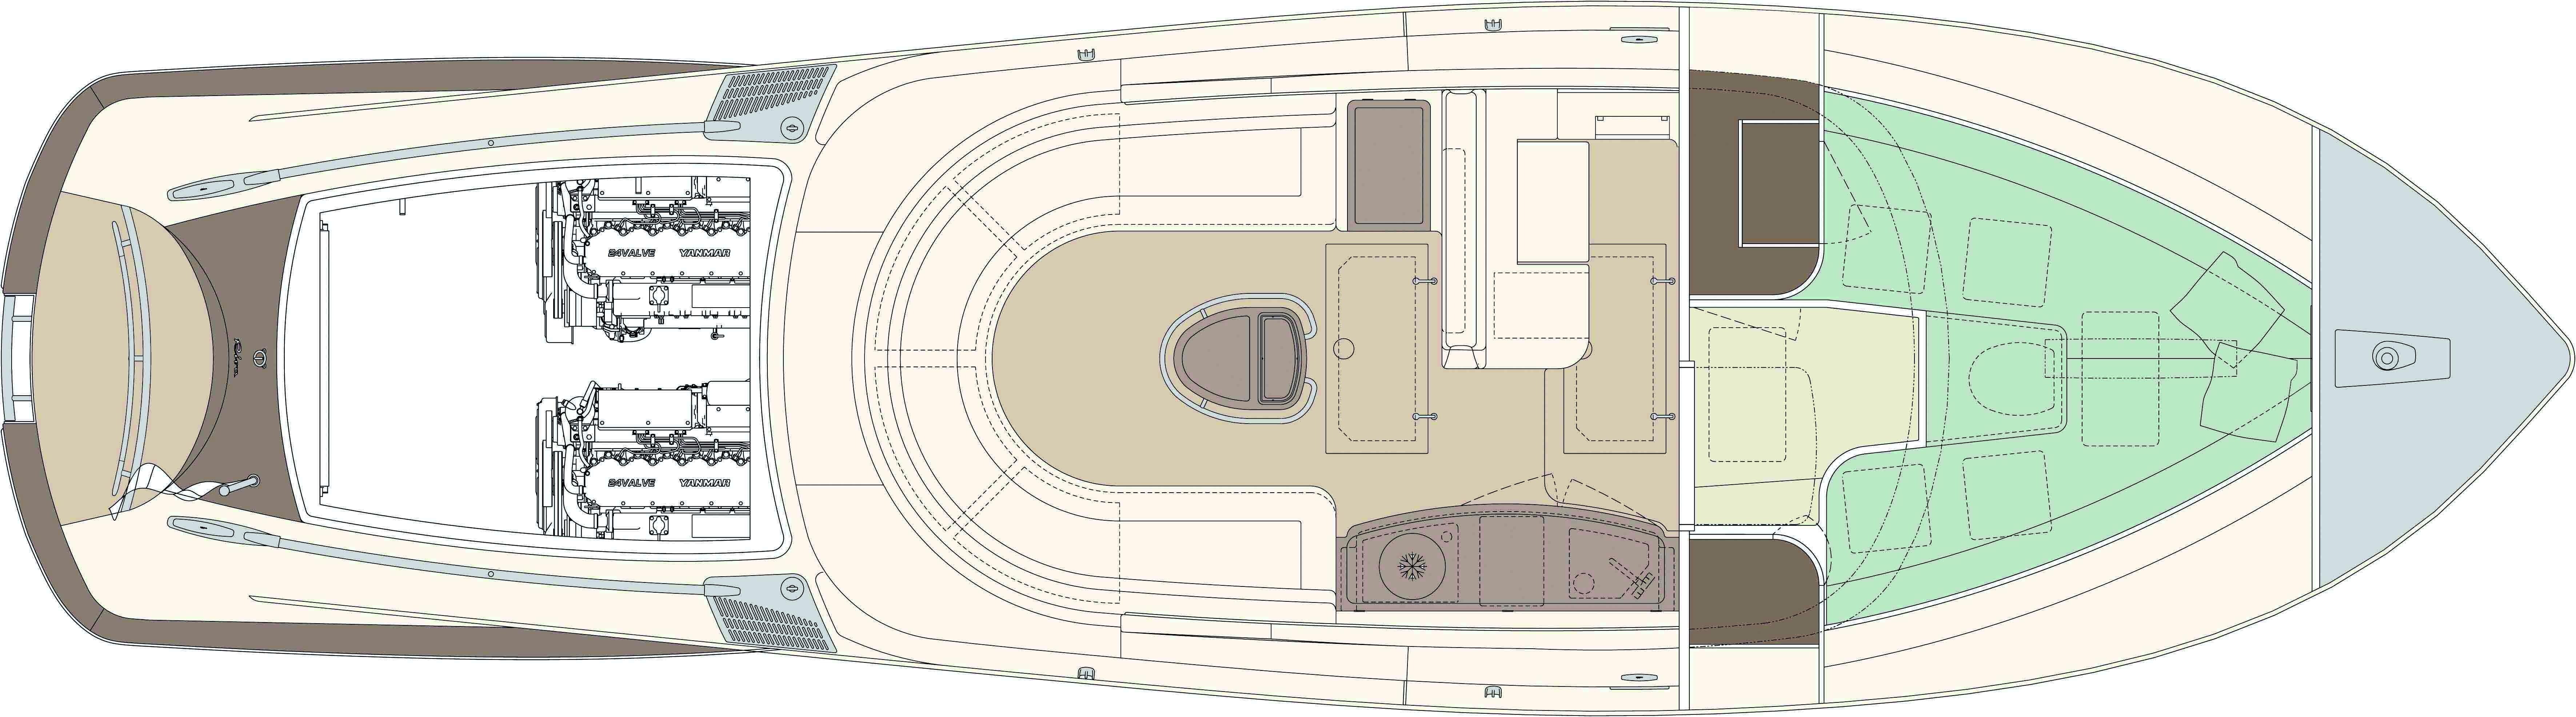 Manufacturer Provided Image: Riva Aquariva Super Lower Deck Layout Plan